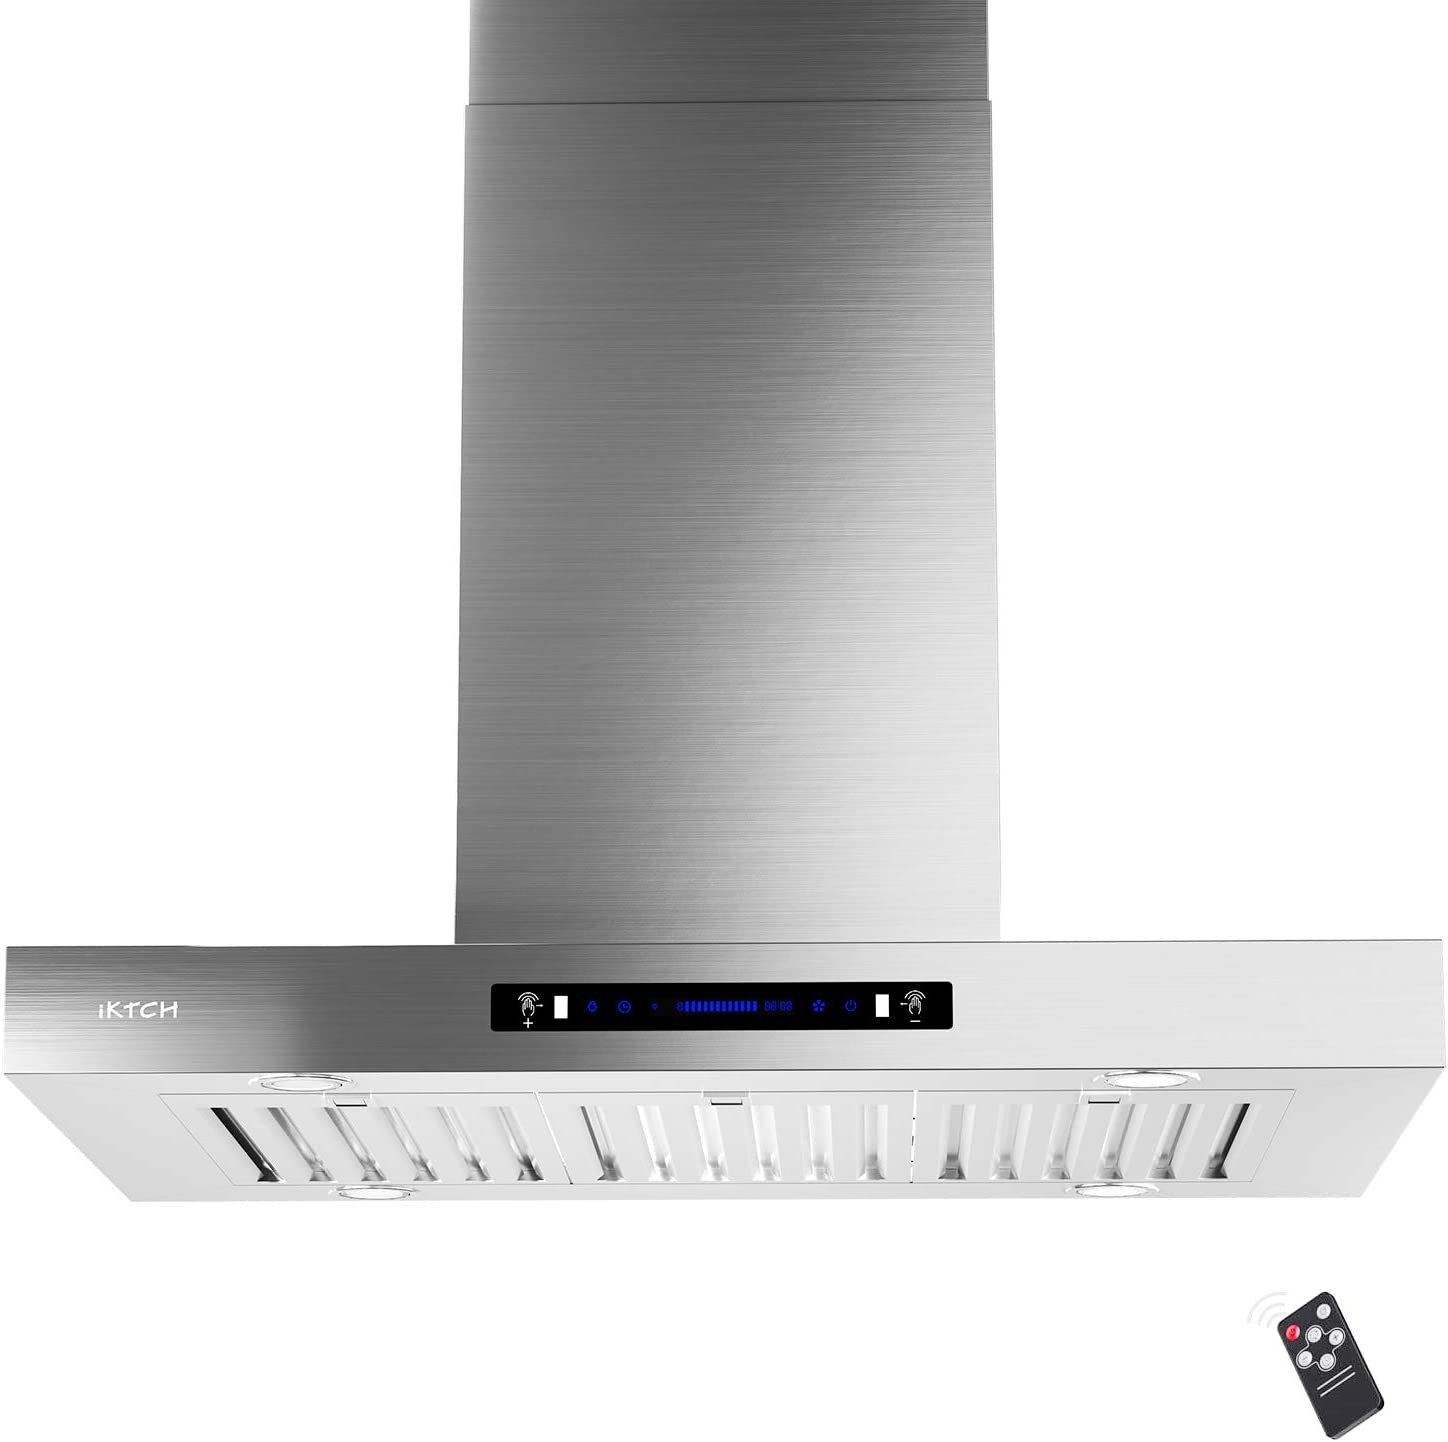 IKTCH 36 inches Island Mount Range Hood, 900 CFM Stainless Steel Kitchen Chimney Vent with Gesture Sensing & Touch Control Switch Panel, 4 Pcs Adjustable Lights, 3 Pcs Baffle Filter IKIS02-36